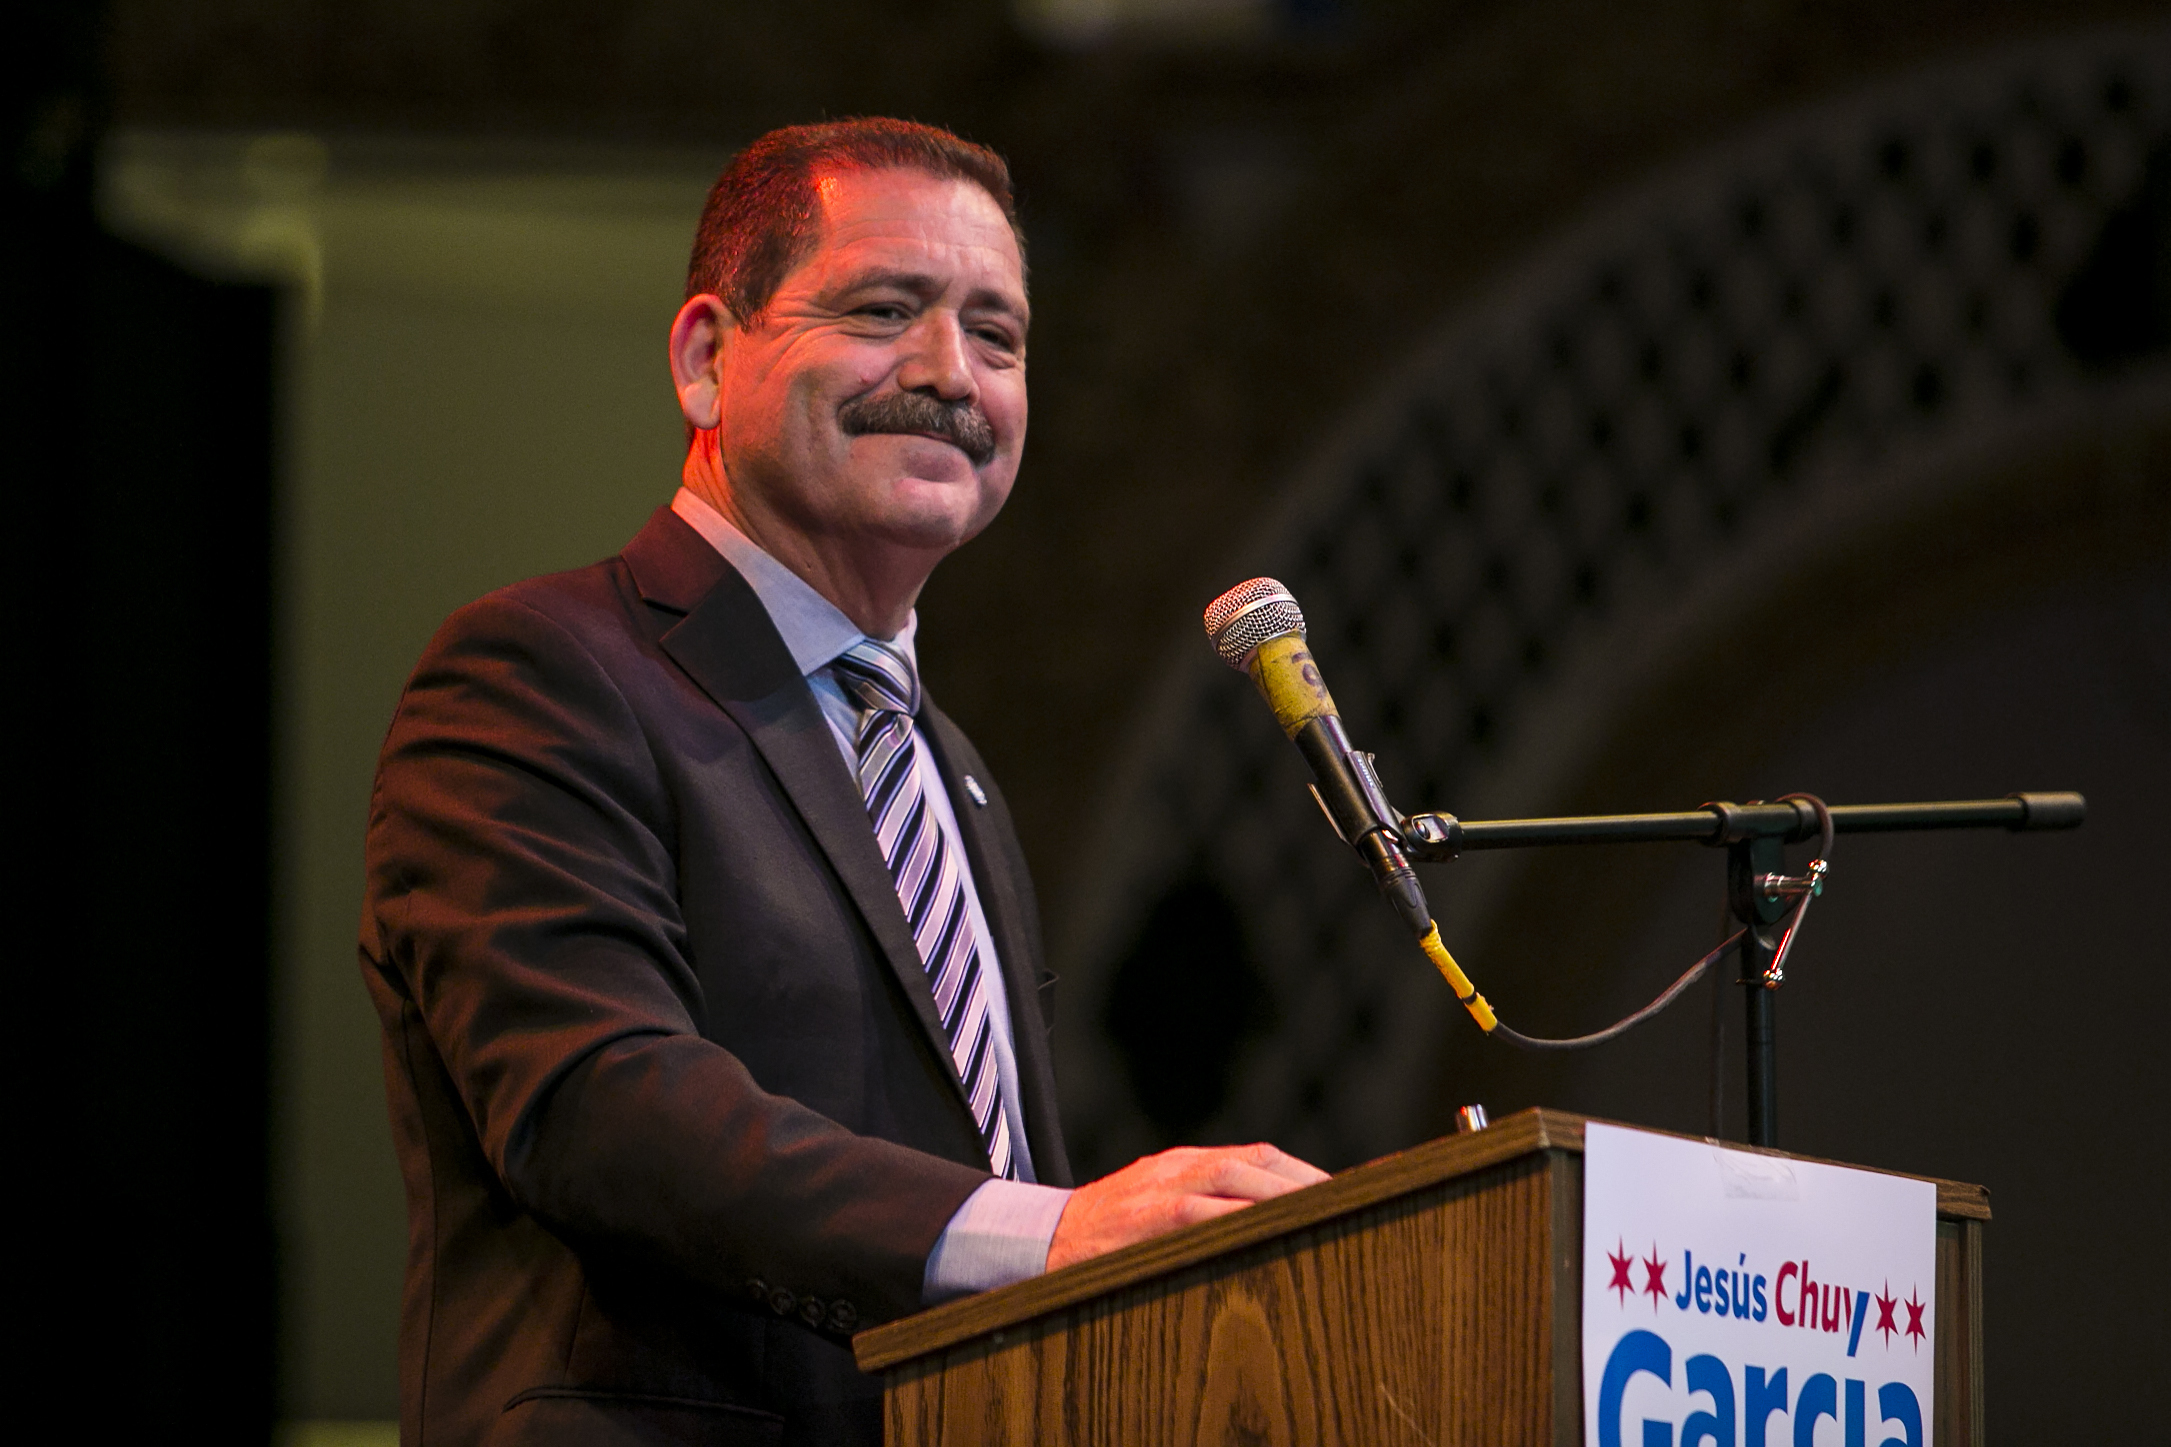 Jesús 'Chuy' García, 4th Congressional DistrictDemocratic nominee and incumbent, 2020 election candidate questionnaire